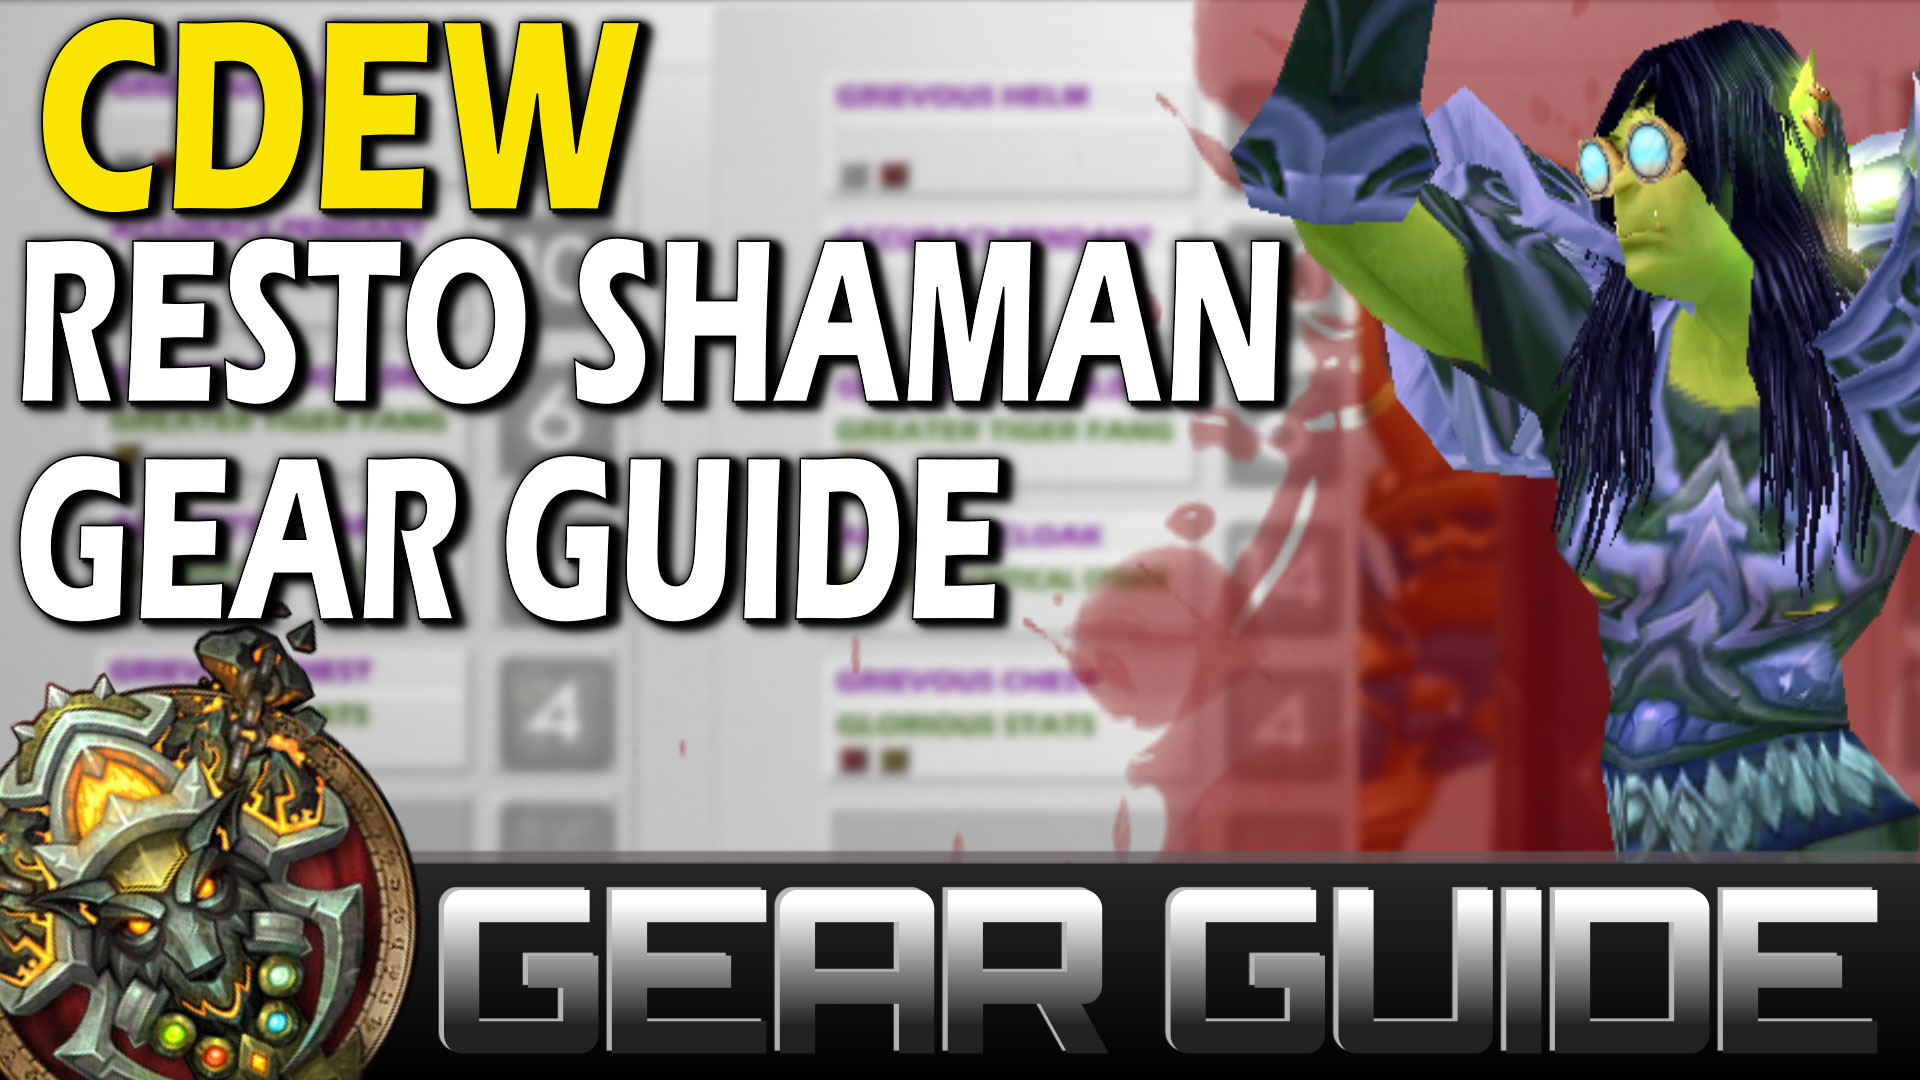 Cdew restoration shaman gearing guide skill capped by cdew publicscrutiny Choice Image